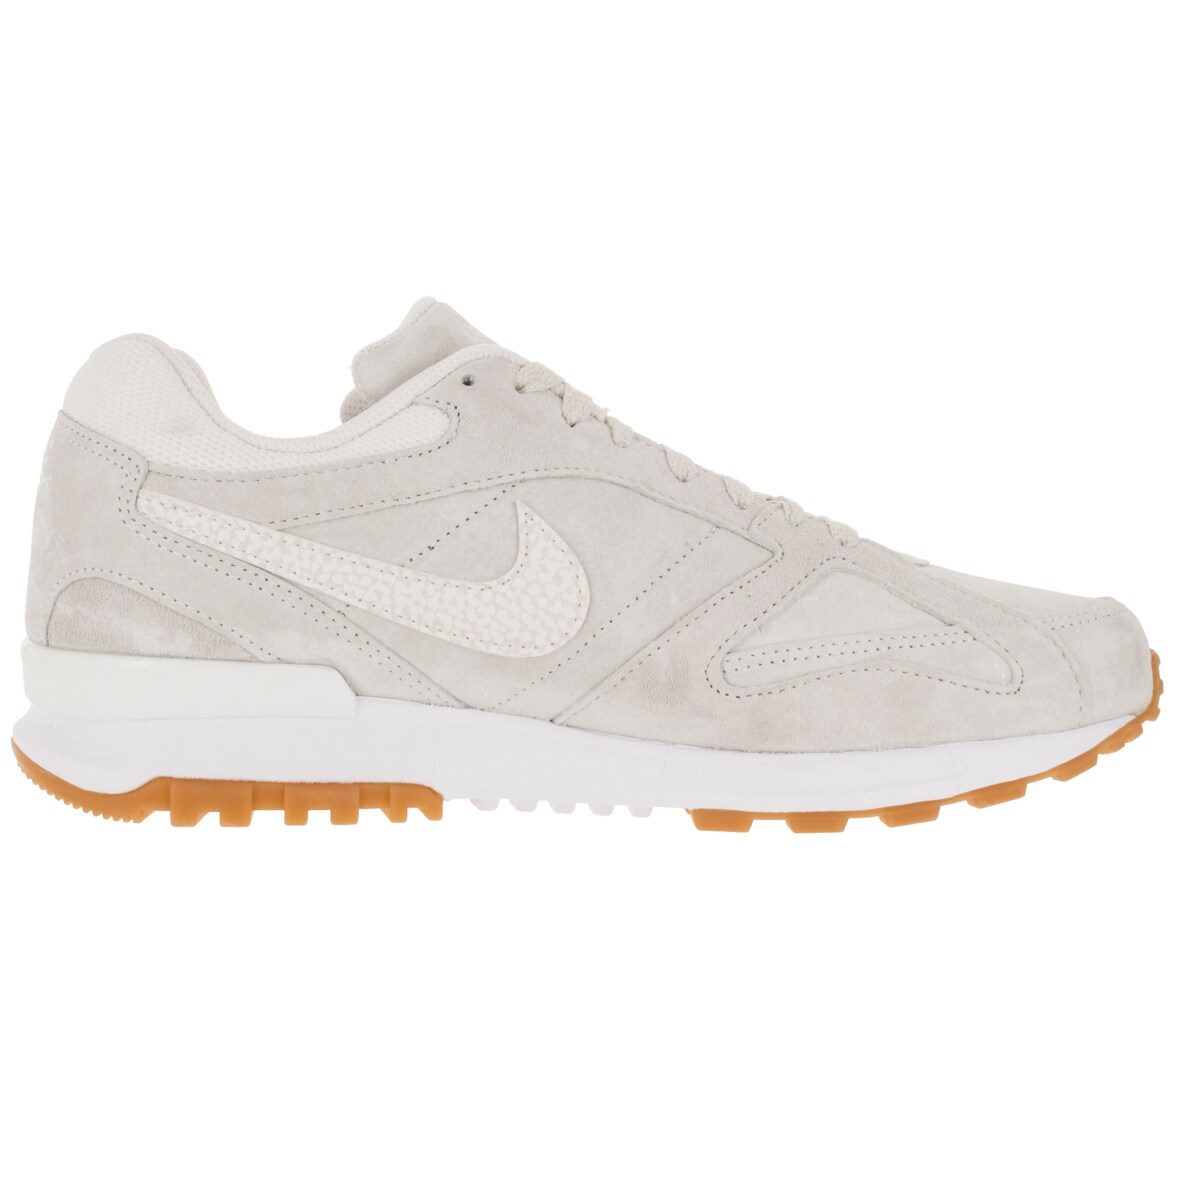 cheap for discount d62d6 6c9ab Nike-Mens-Air -Pegasus-New-Racer-Prm-Phantom-Phantom-White-Gm-Yllw-Running-Shoe-bc1f16f2-7a1b-4f25-a837-52596b3d7040.jpg